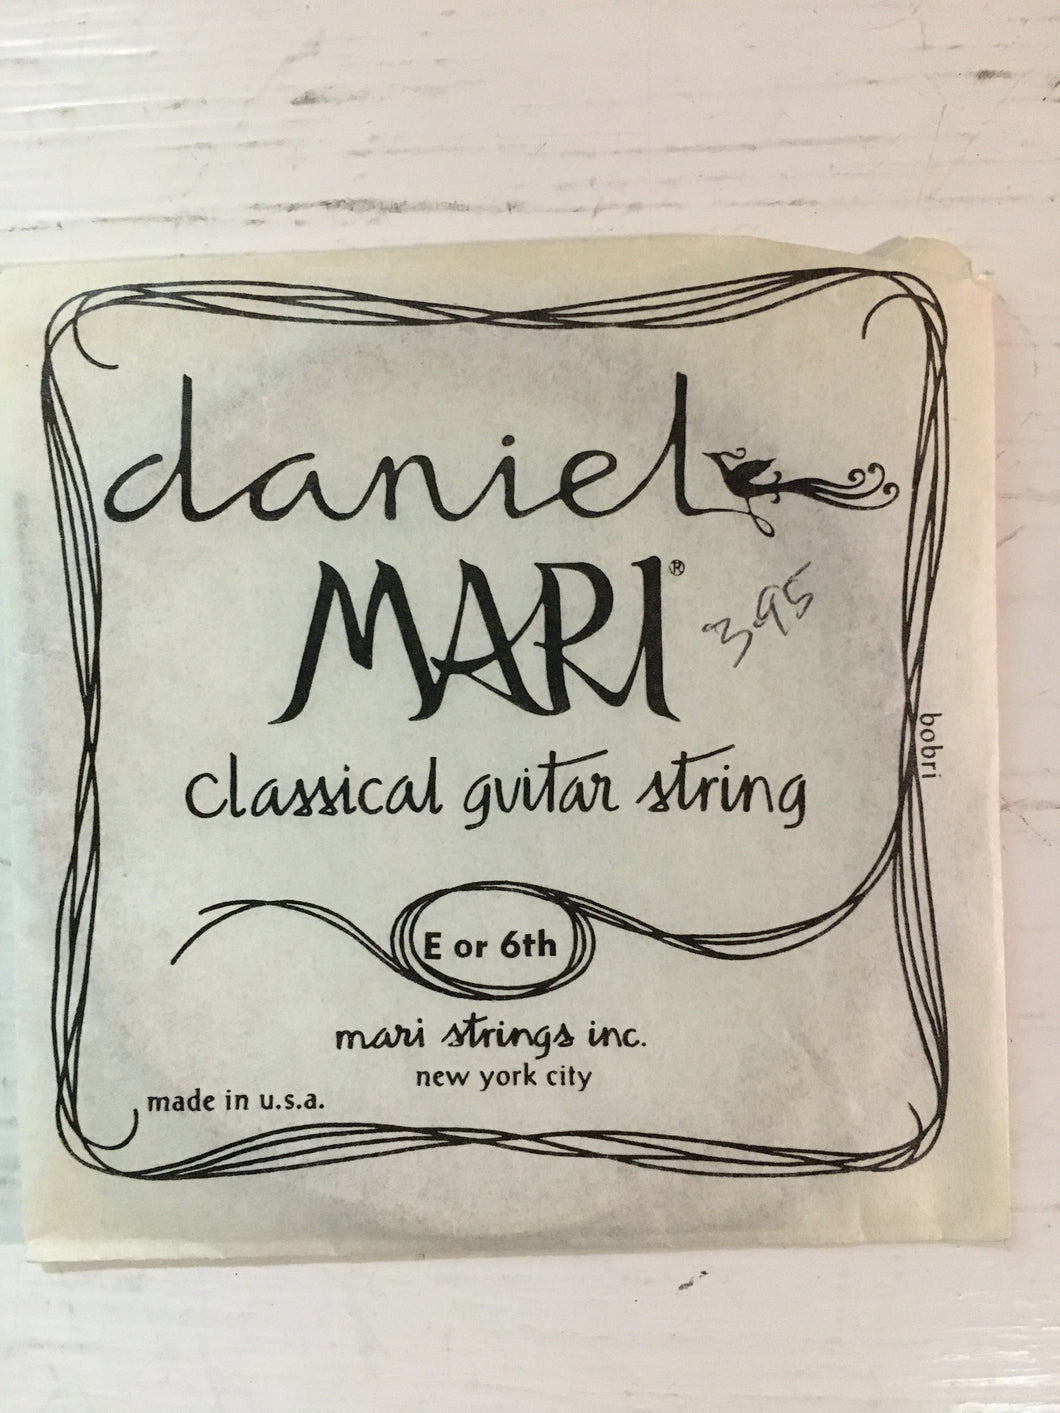 Classical Single Strings - Daniel Mari Classical Guitar String Low E